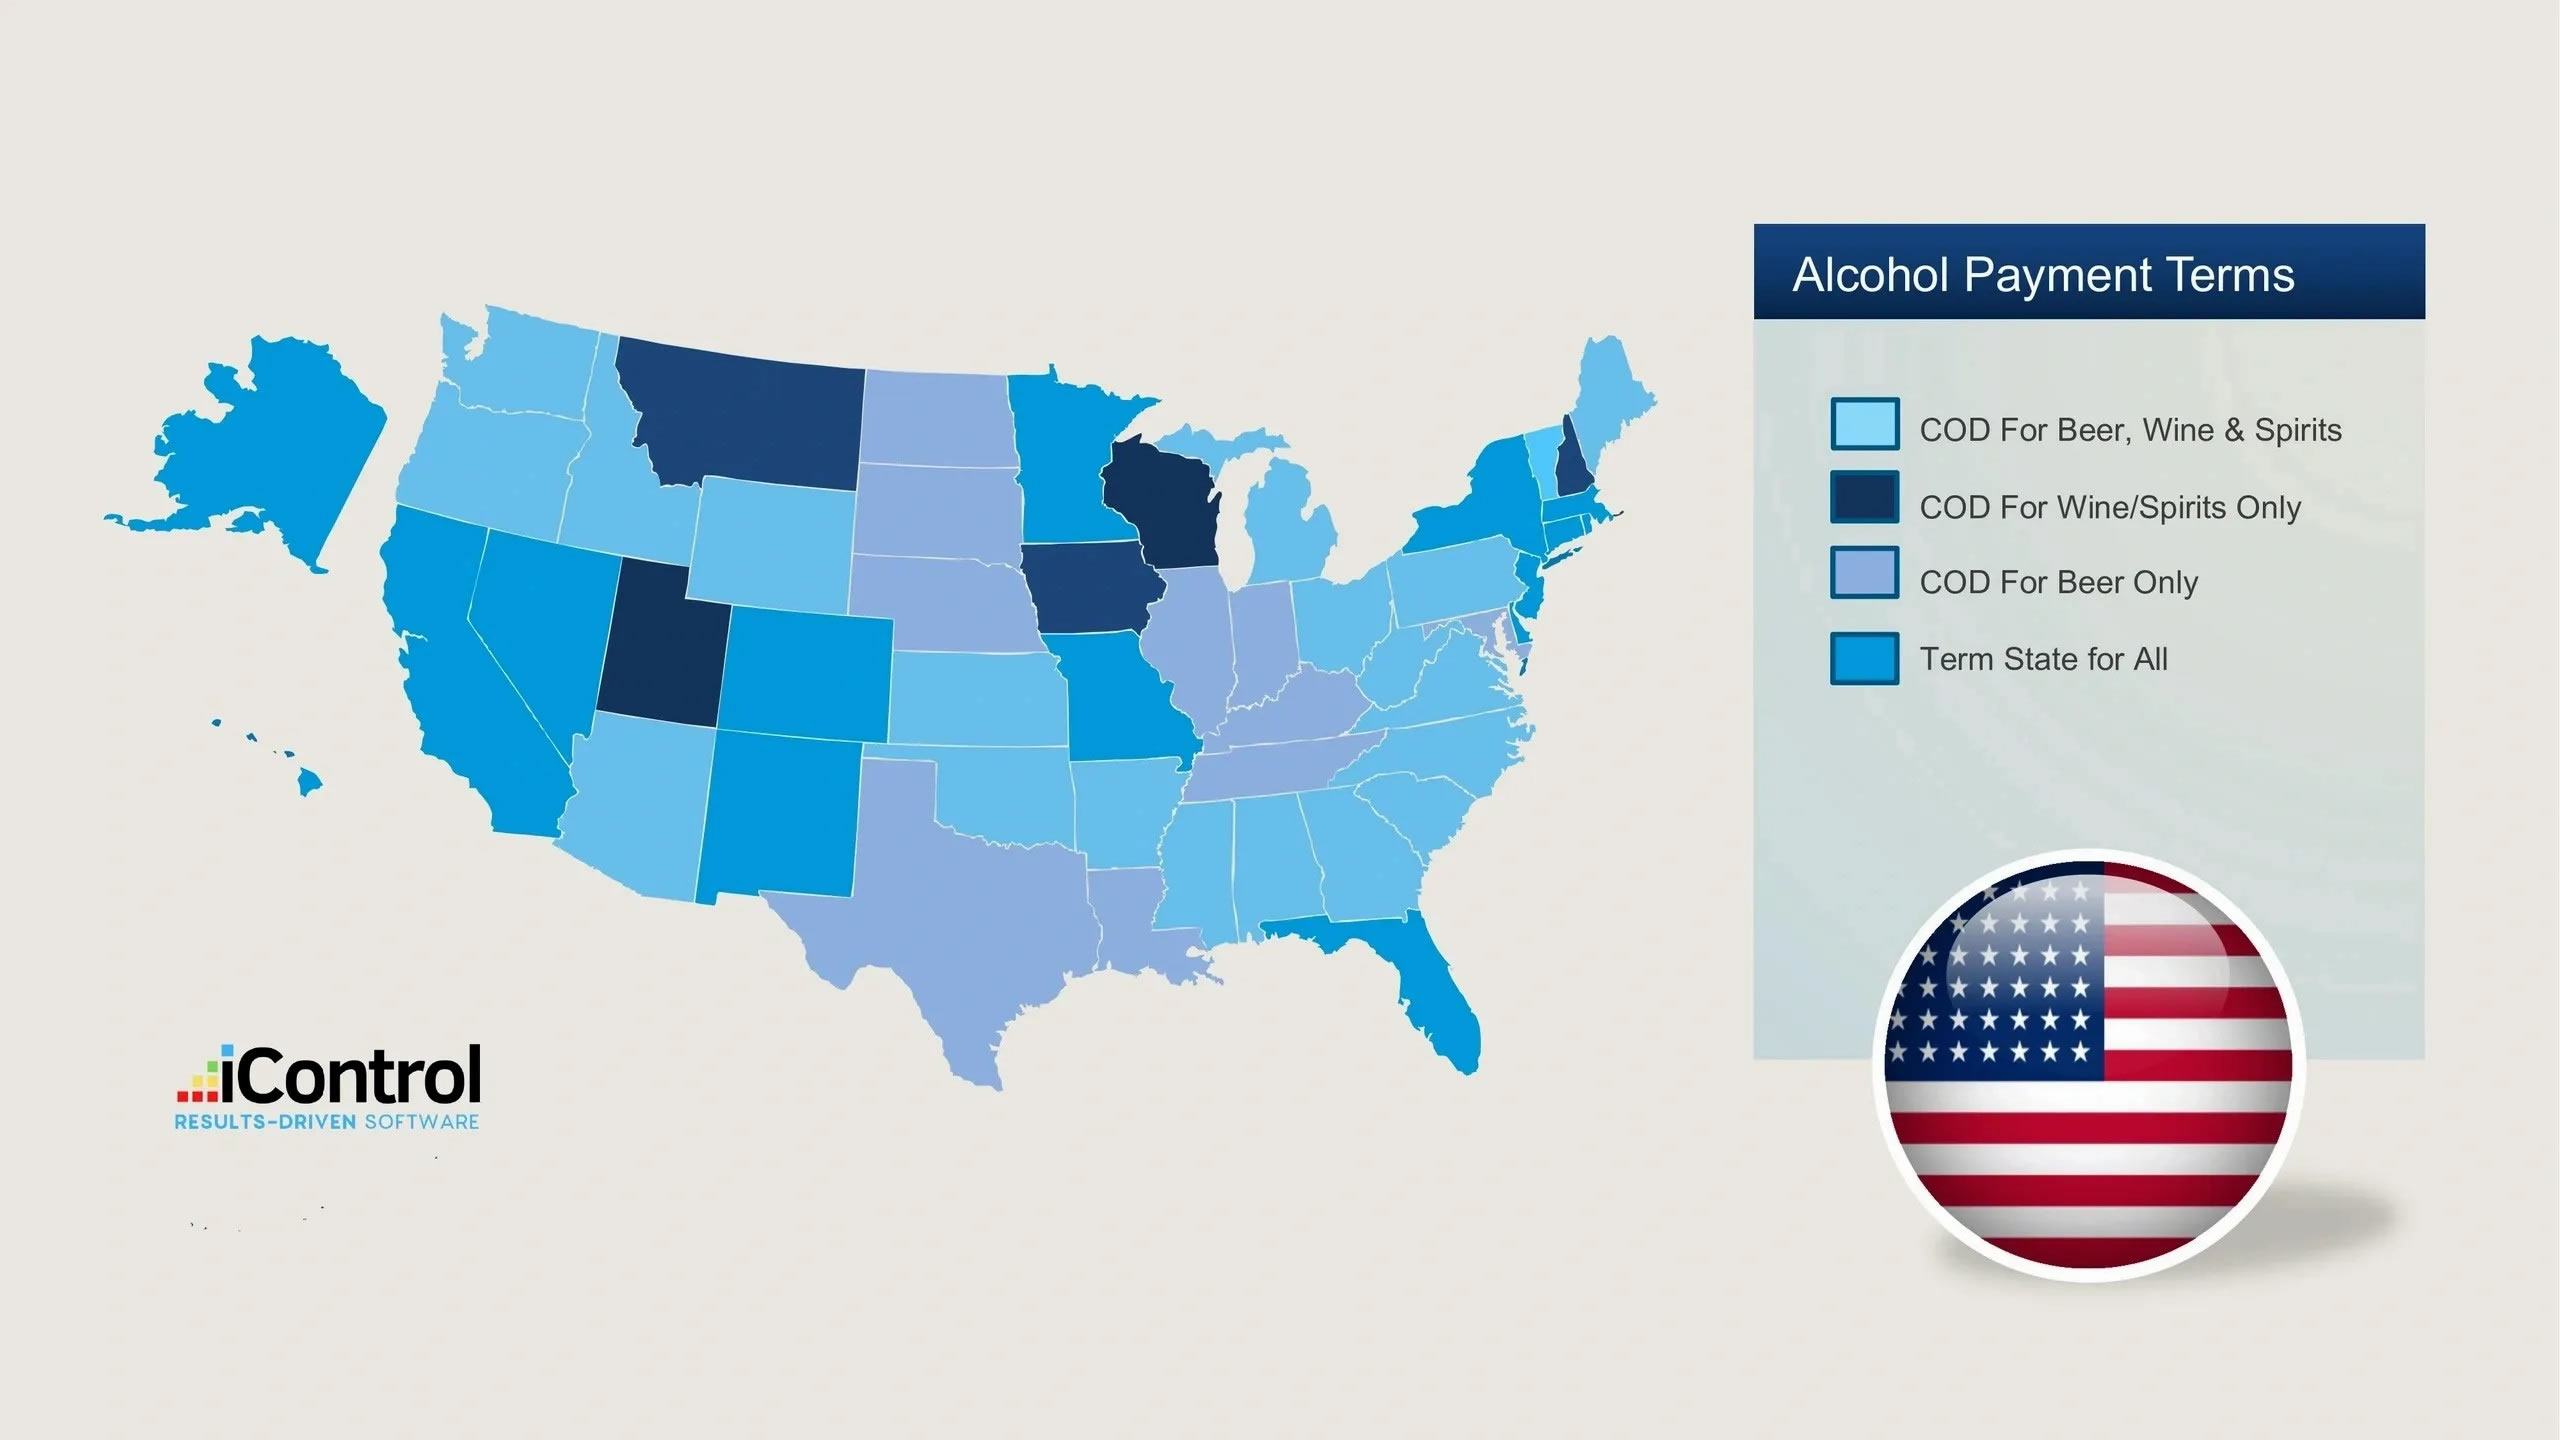 iControl Alcohol Payment Laws by State